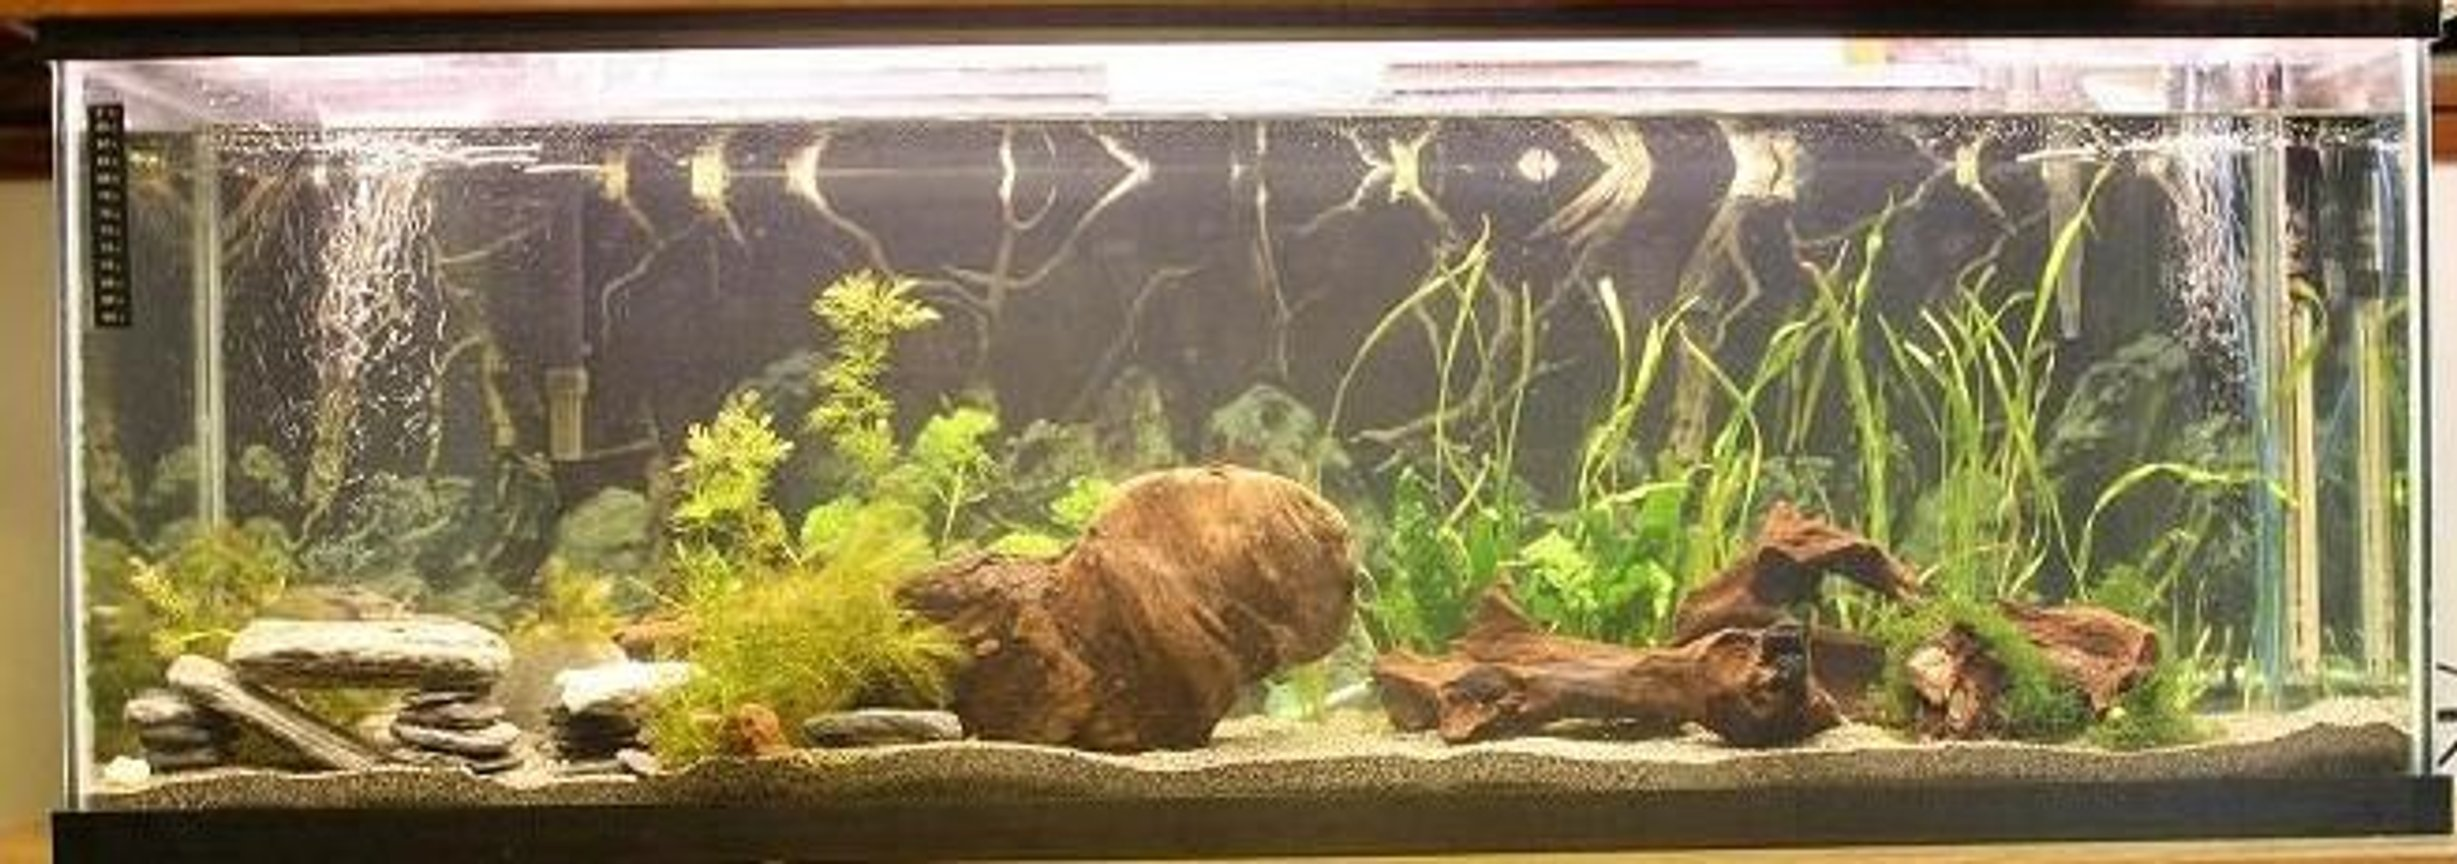 45 gallons planted tank (mostly live plants and fish) - New setup